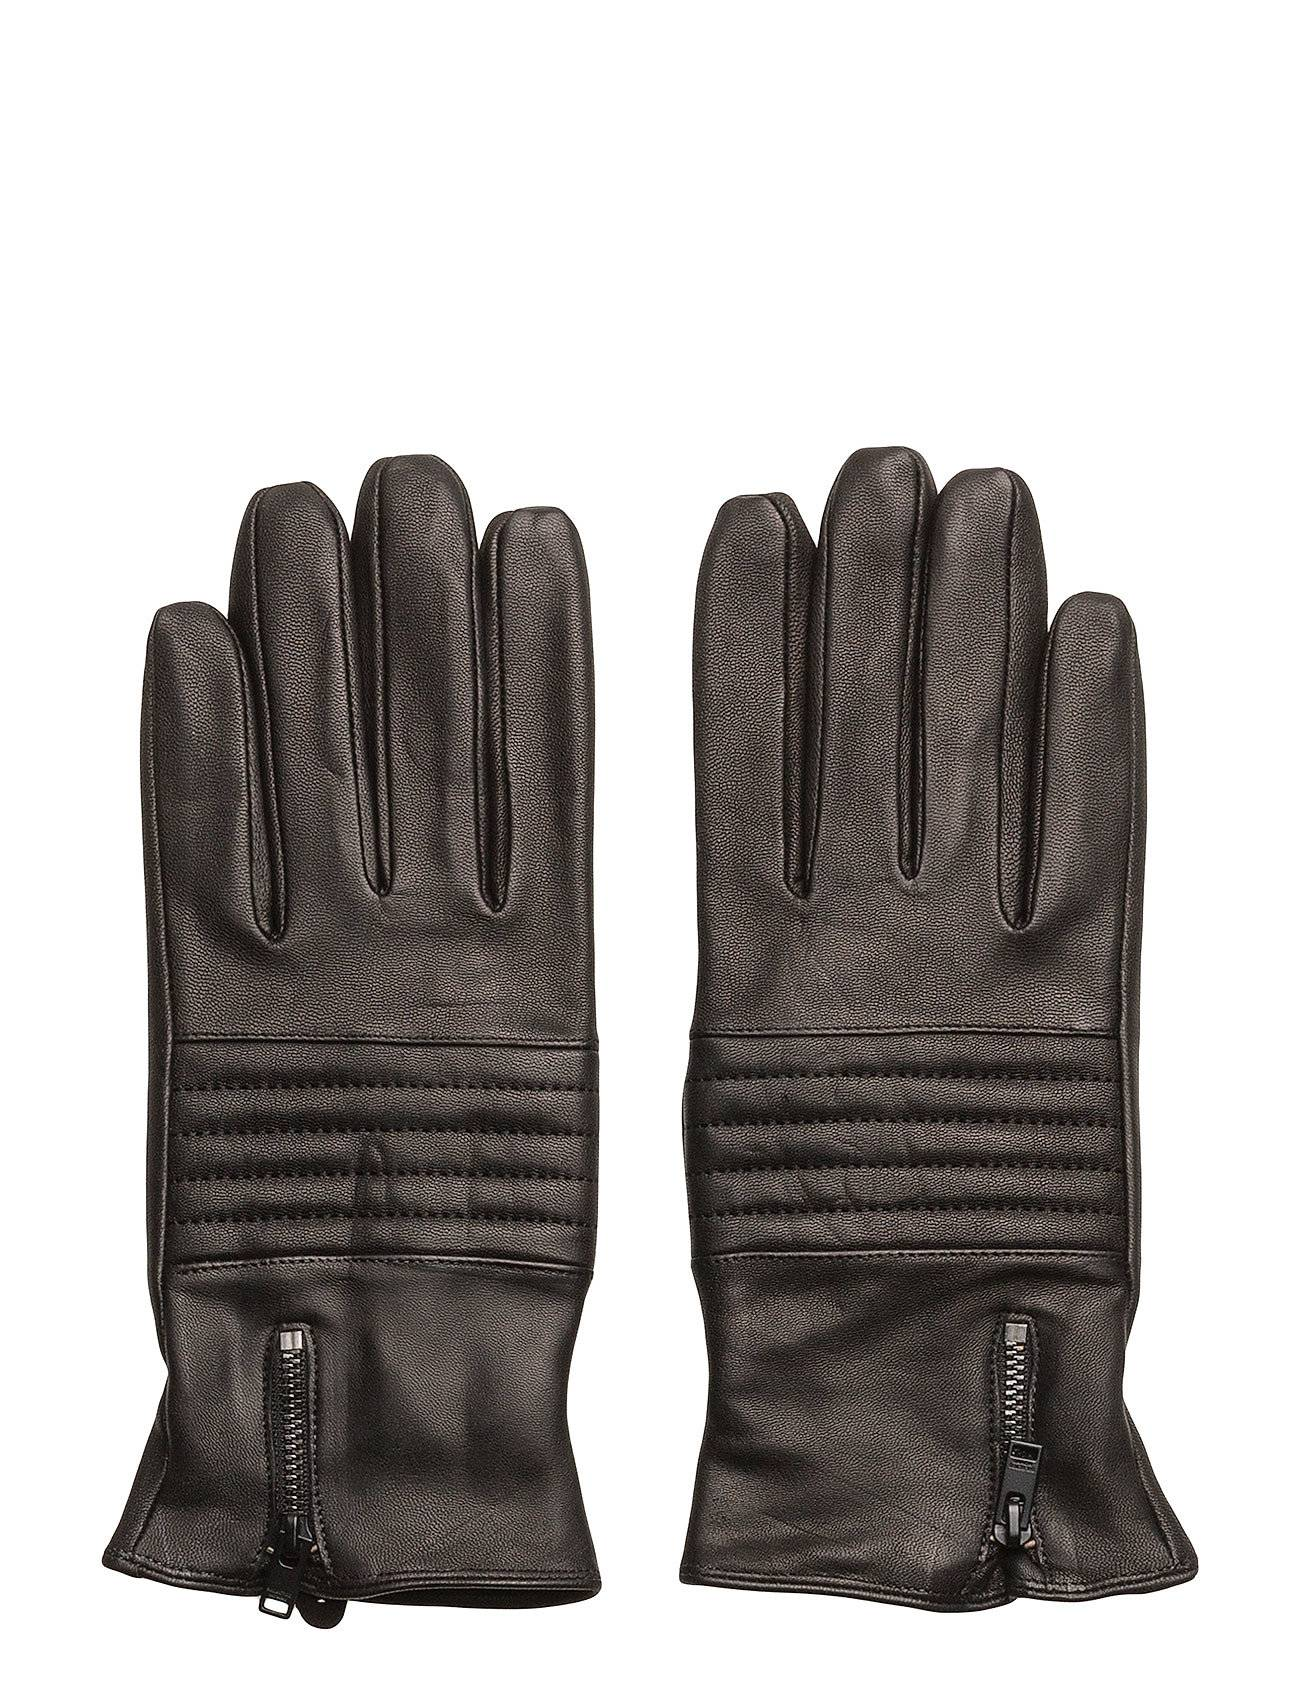 Selected Homme Shdnew Biker Leather Glove